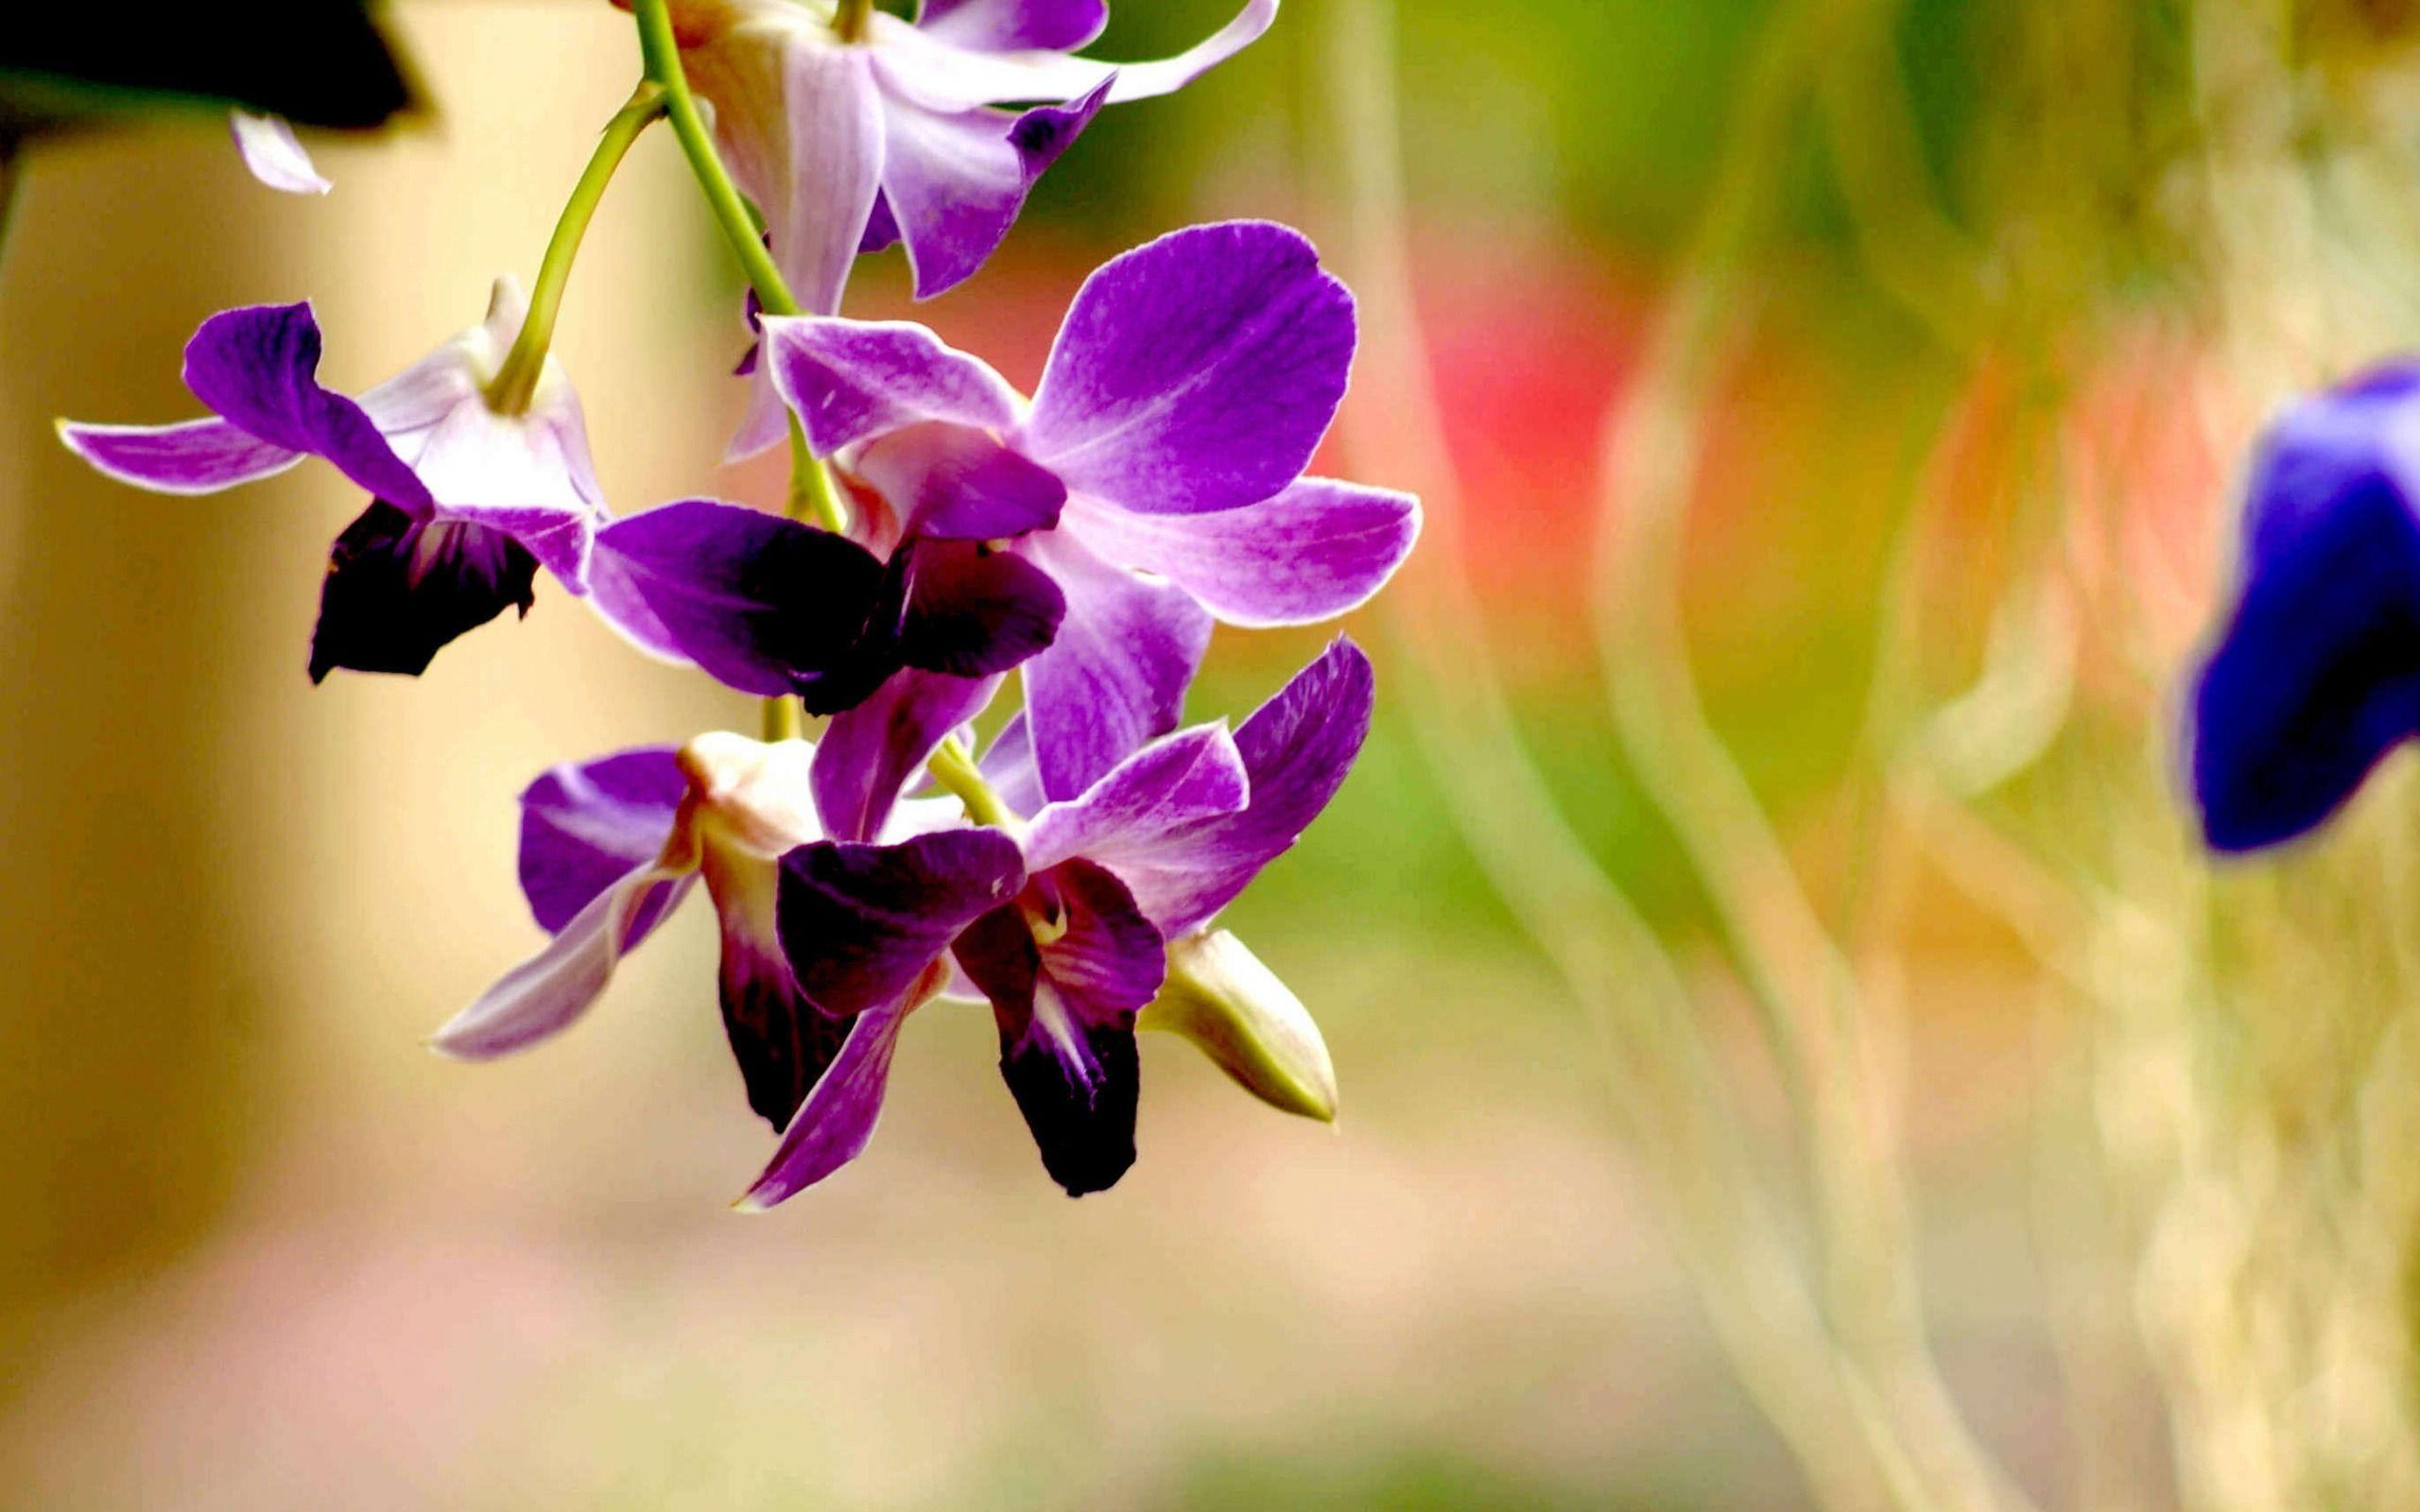 orchid wallpapers backgrounds images - photo #27